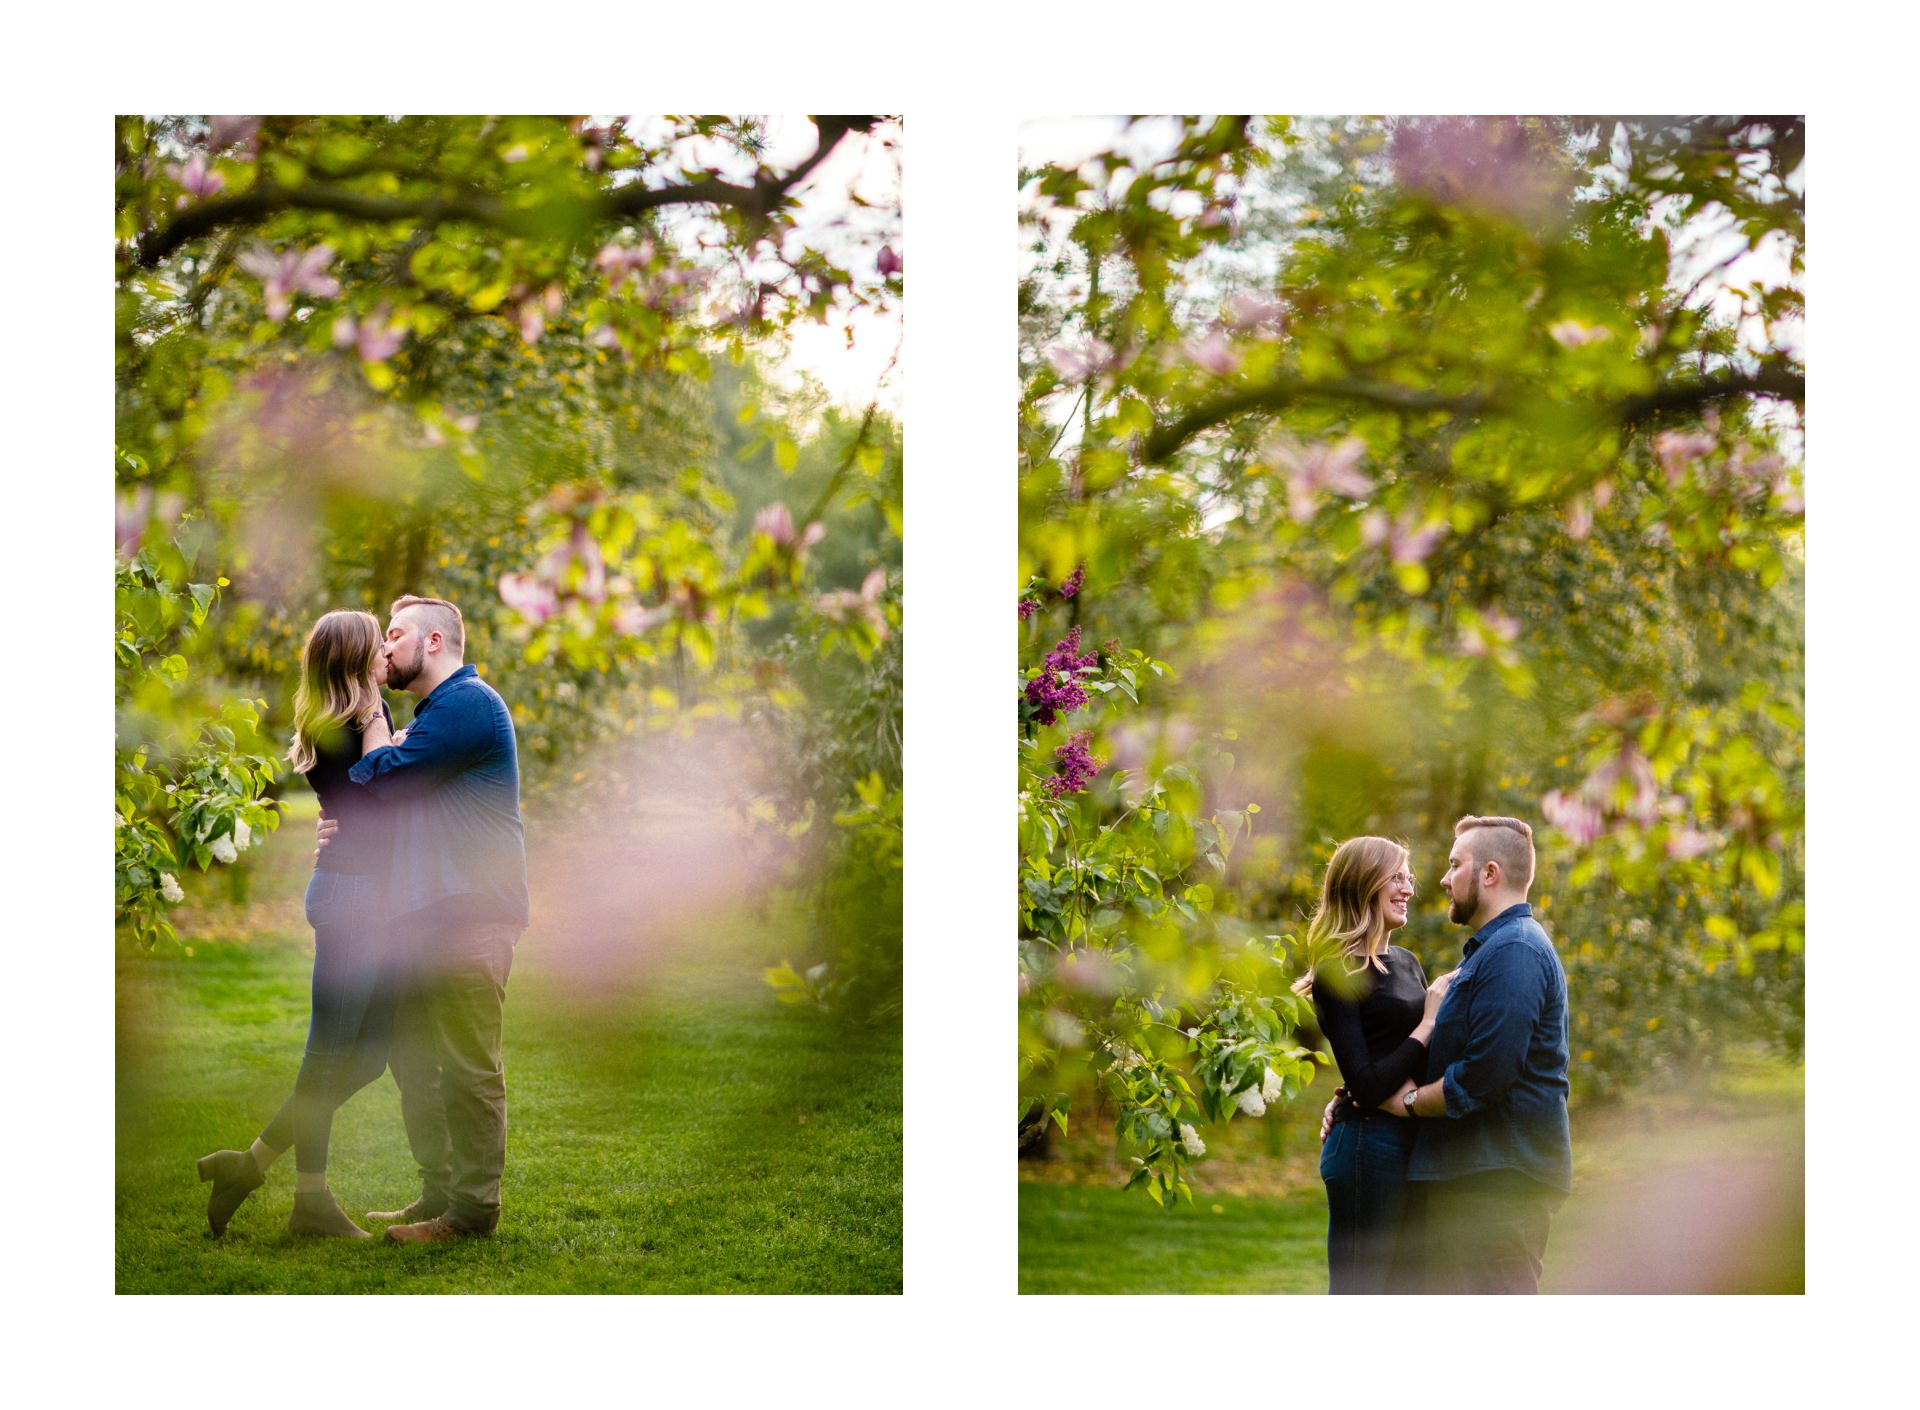 Spring Cleveland Botanical Gardens Engagement Photos 12.jpg